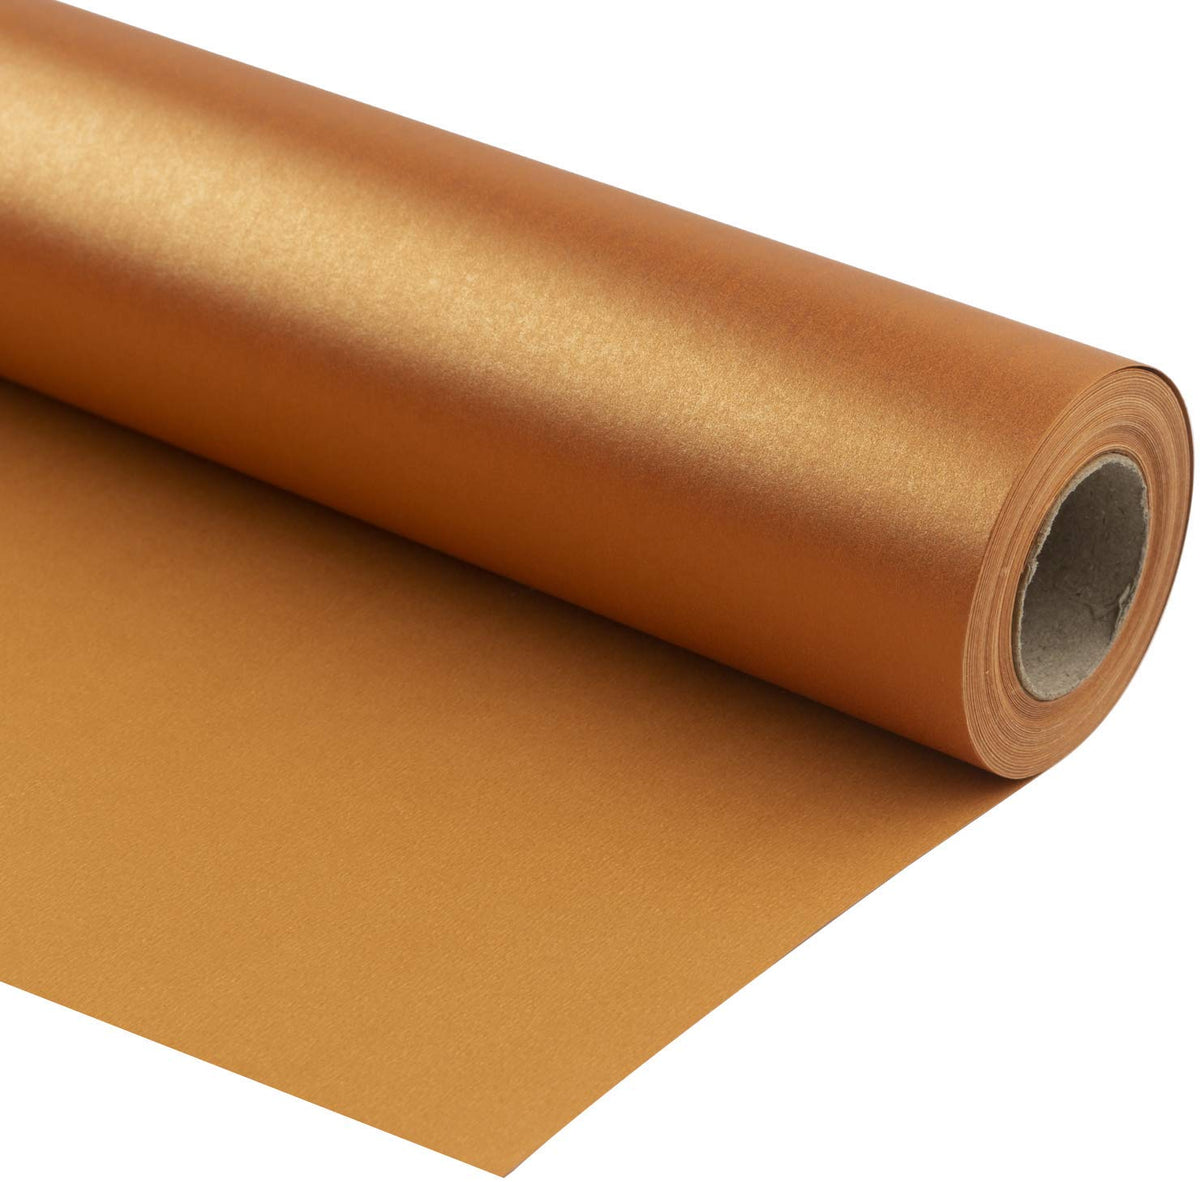 Wrapaholic-Jewelry-Wrapping-Paper-Roll-Copper-m